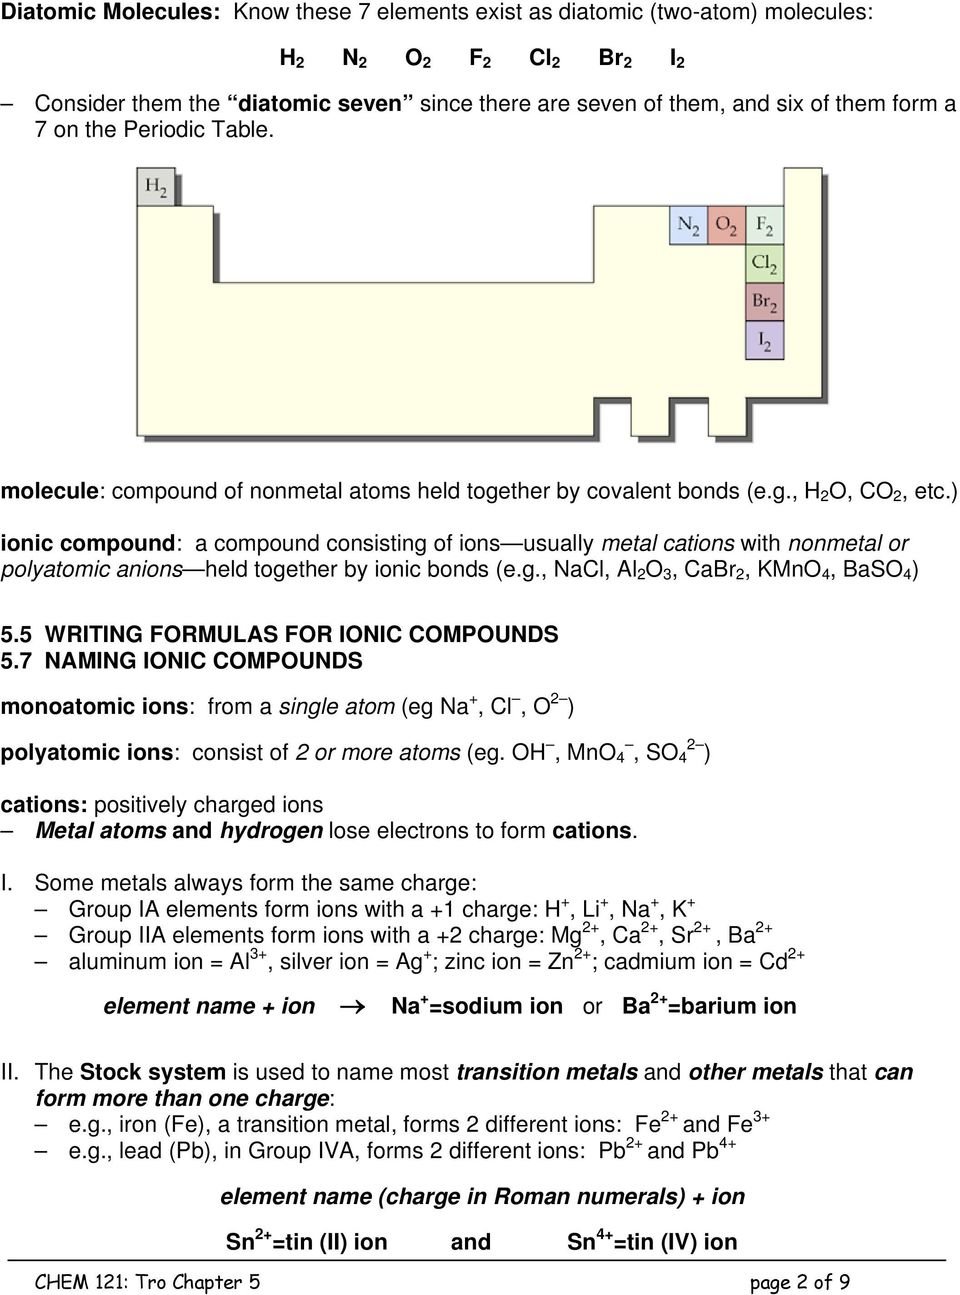 Chapter 5 Molecules And Compounds Pdf